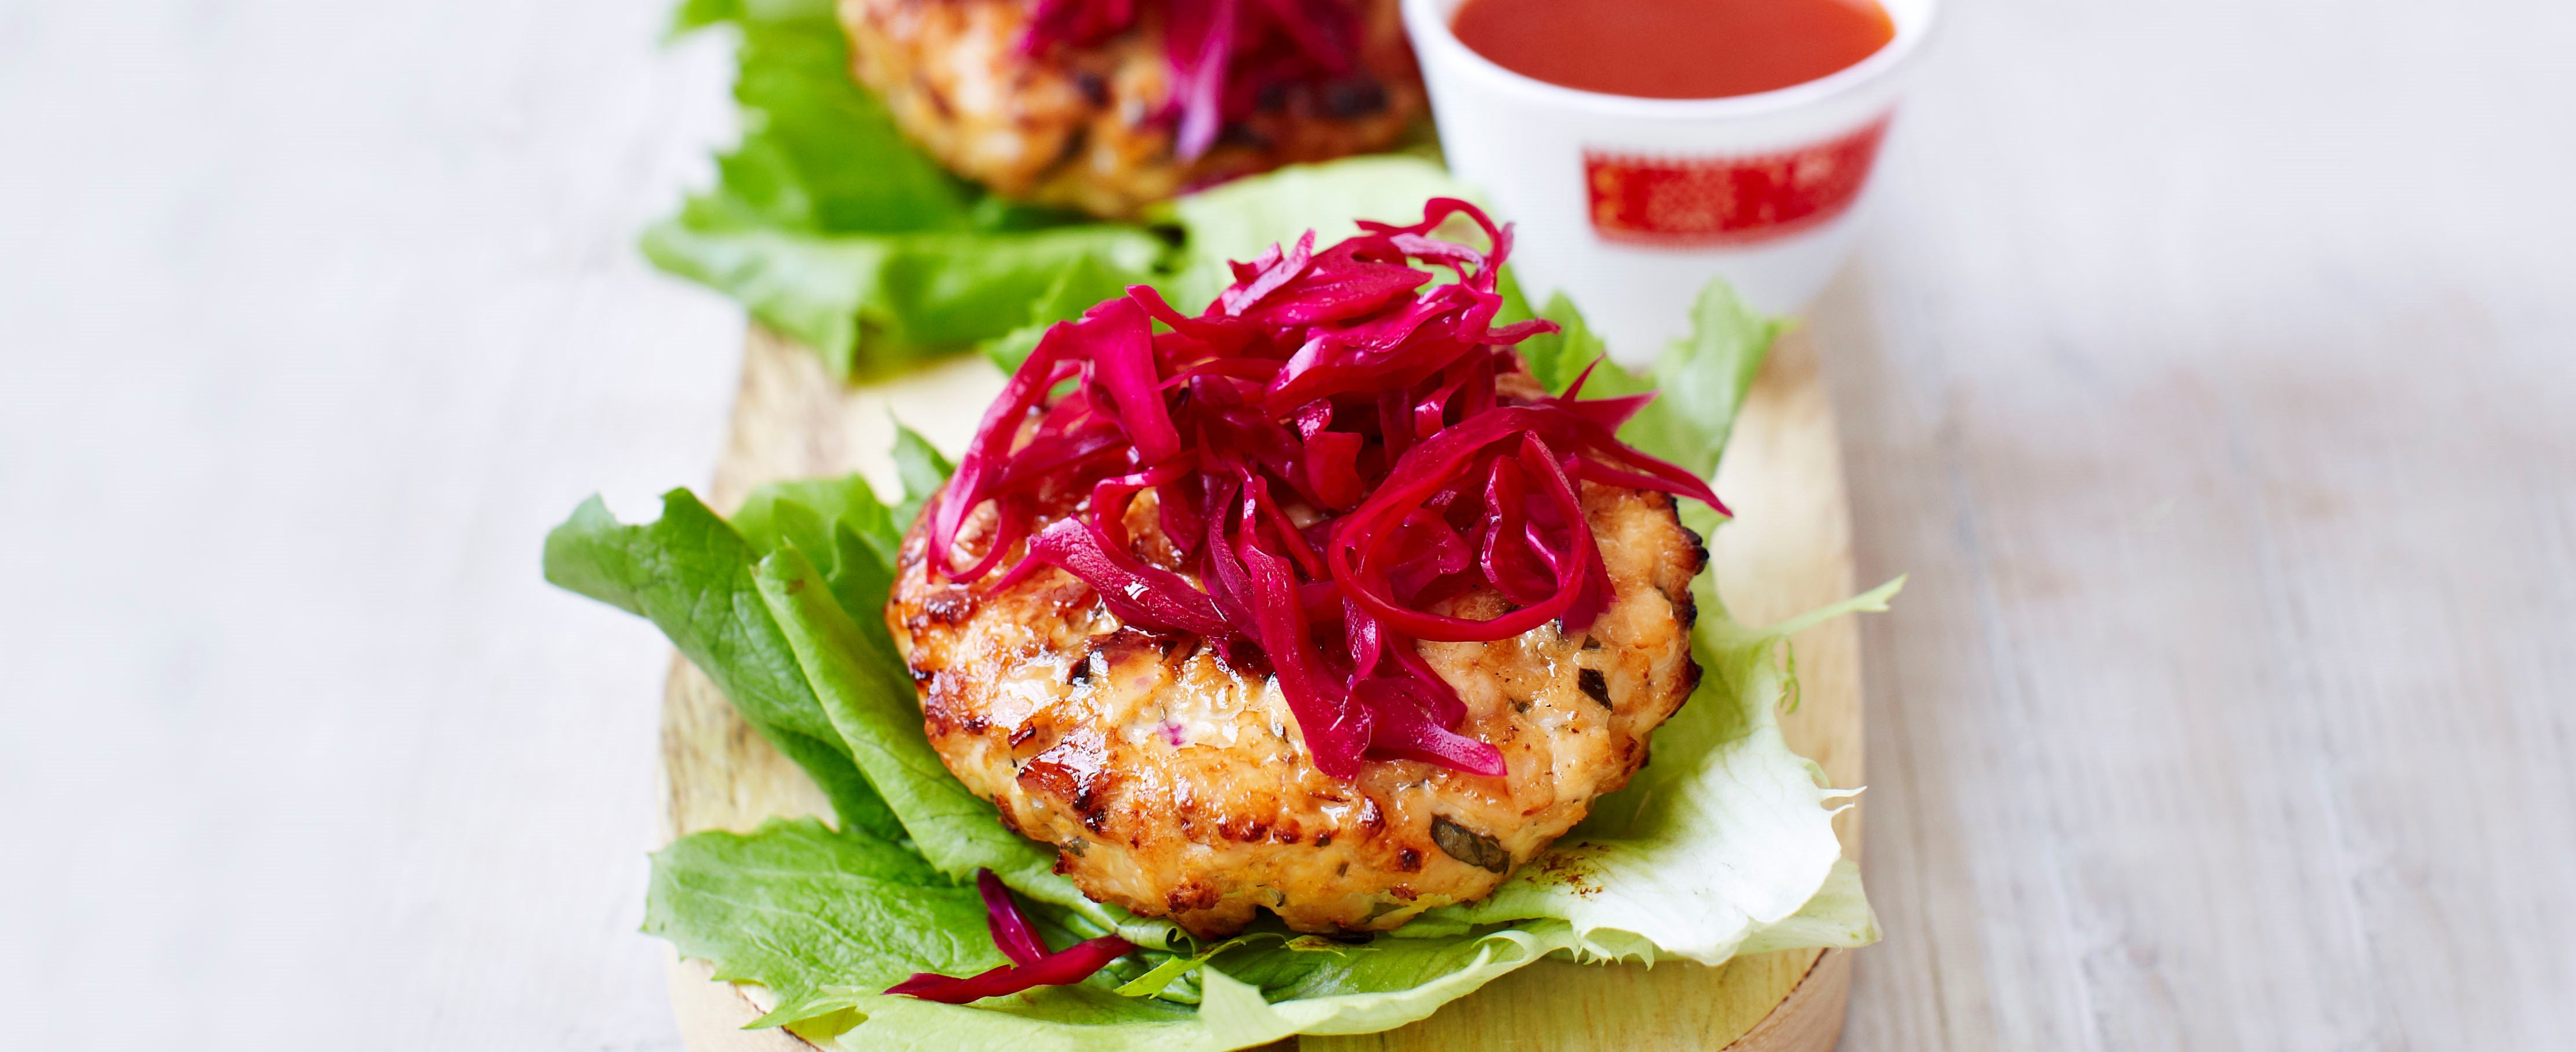 Asian chicken burgers with pickled red cabbage